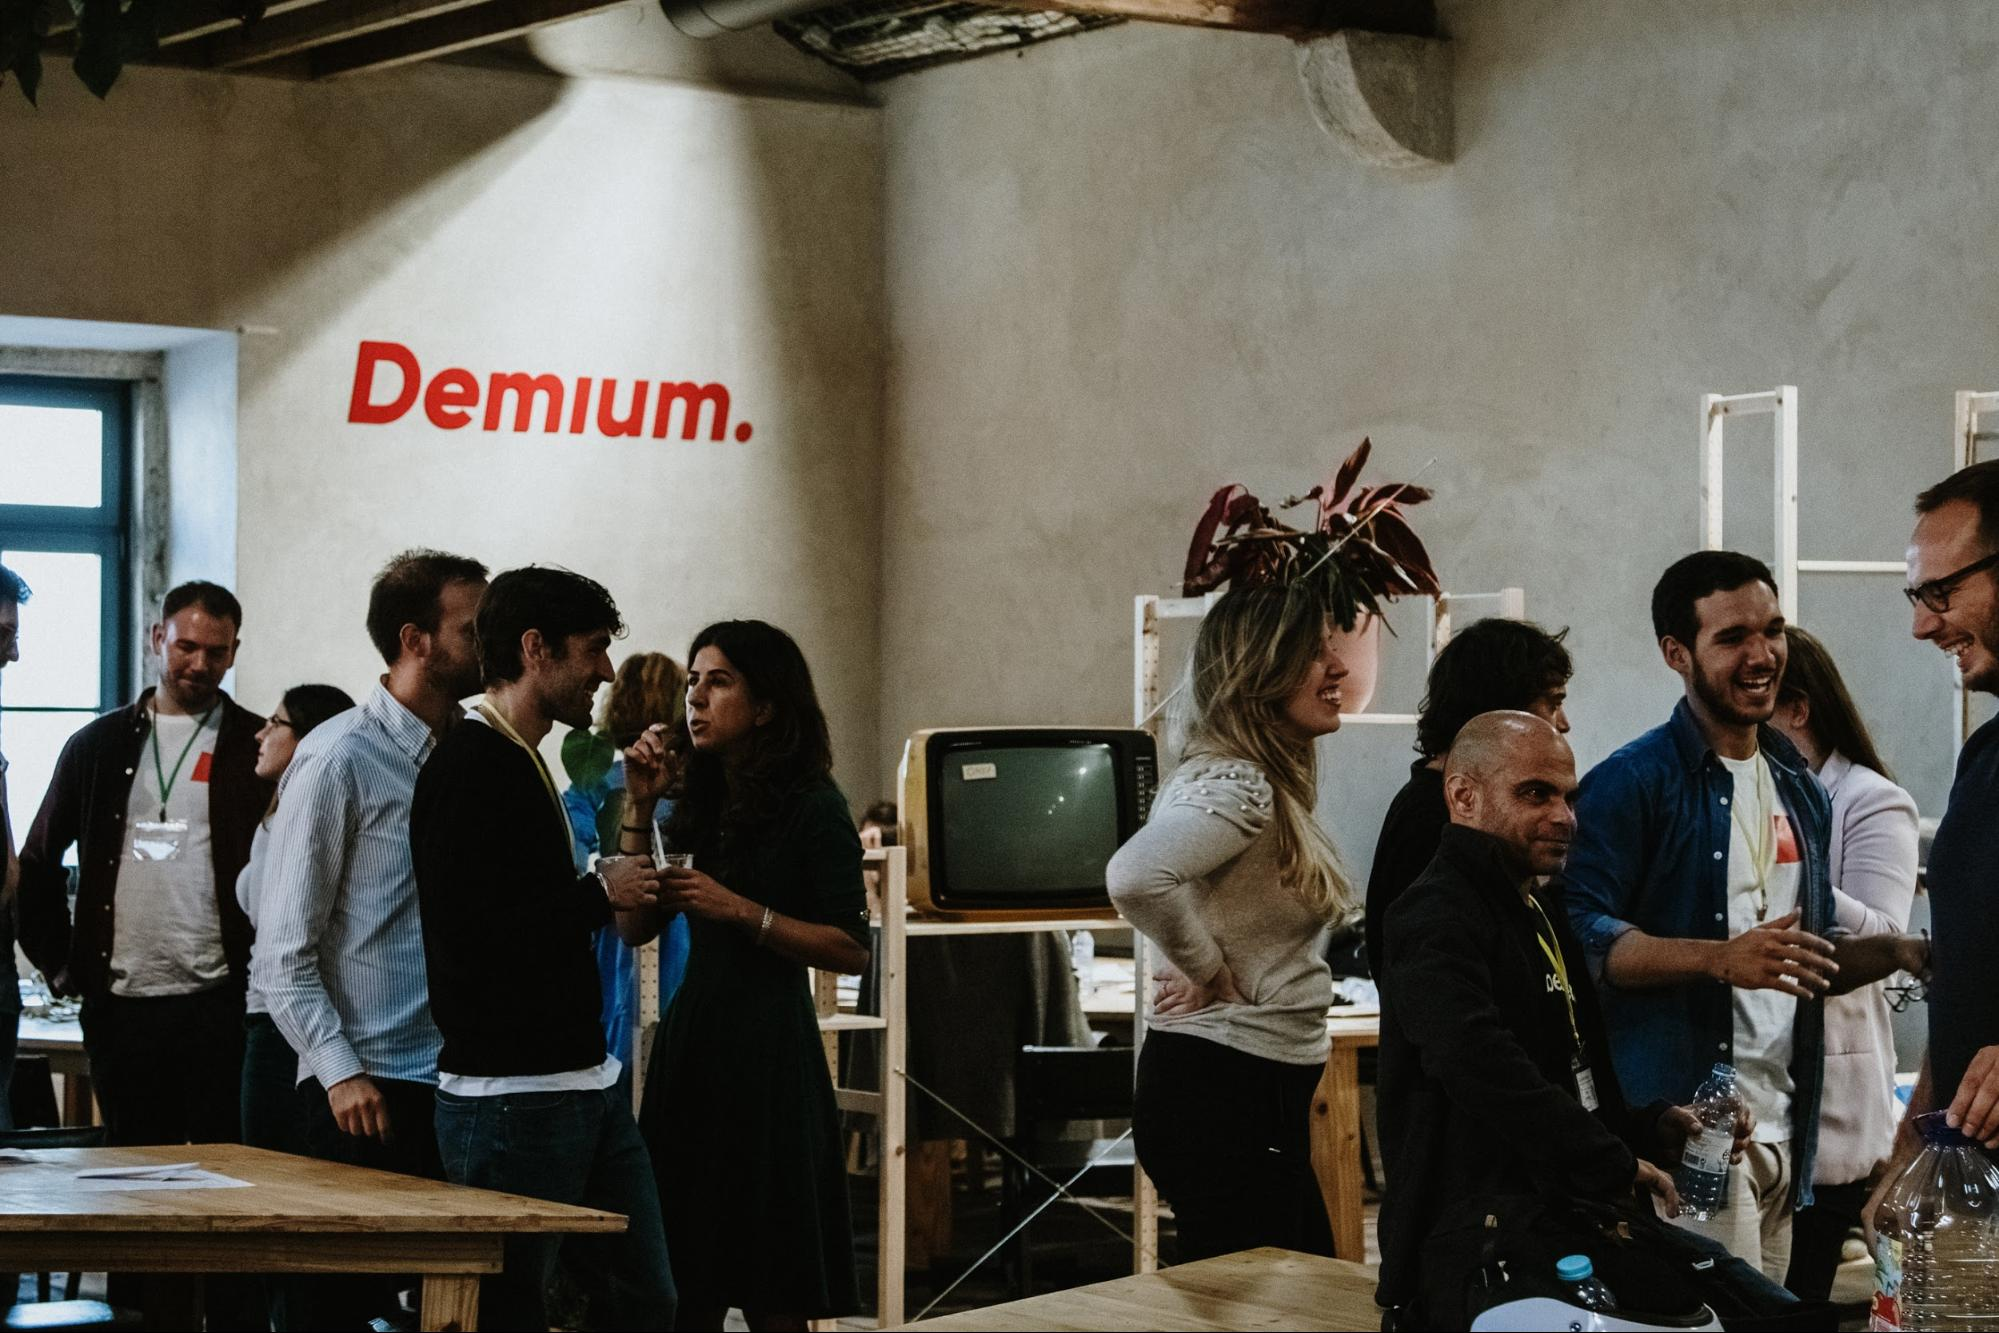 A meetup event at Demium's Lisbon hub